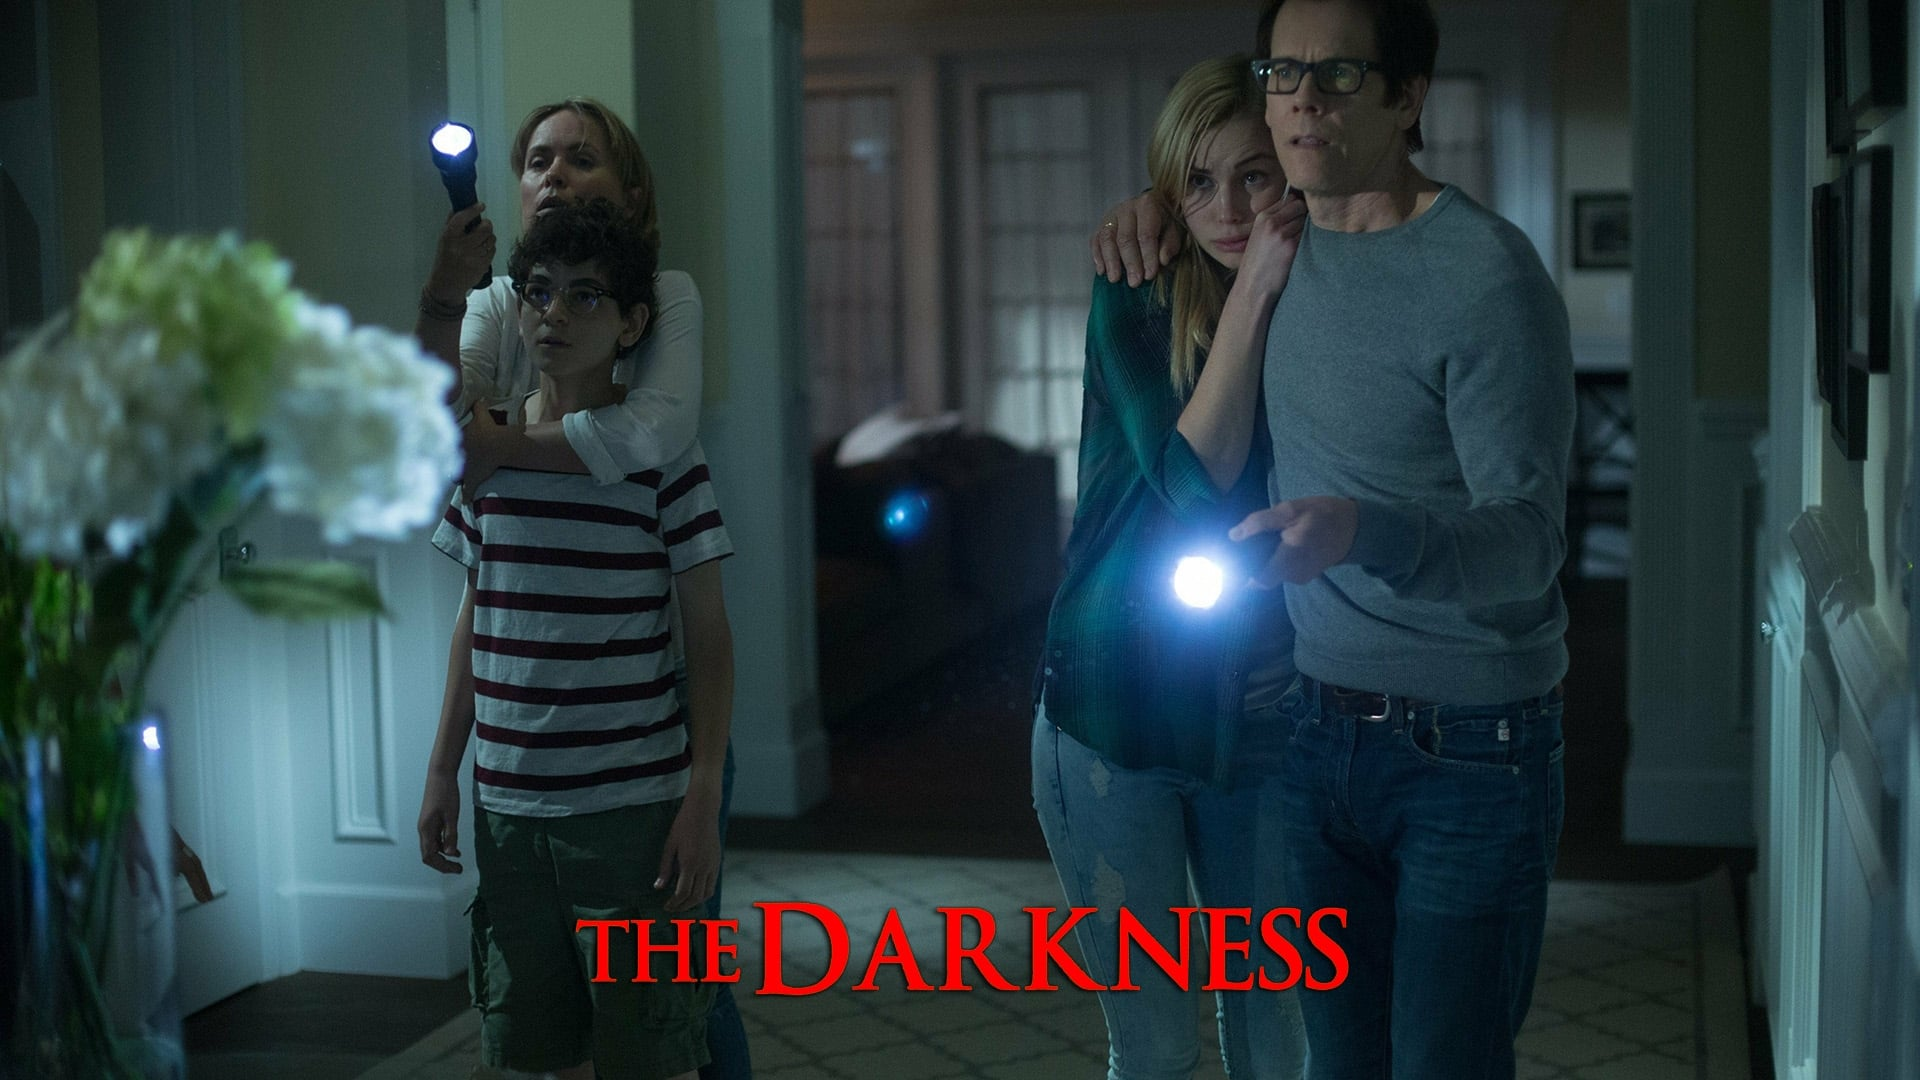 The Darkness-poster-1